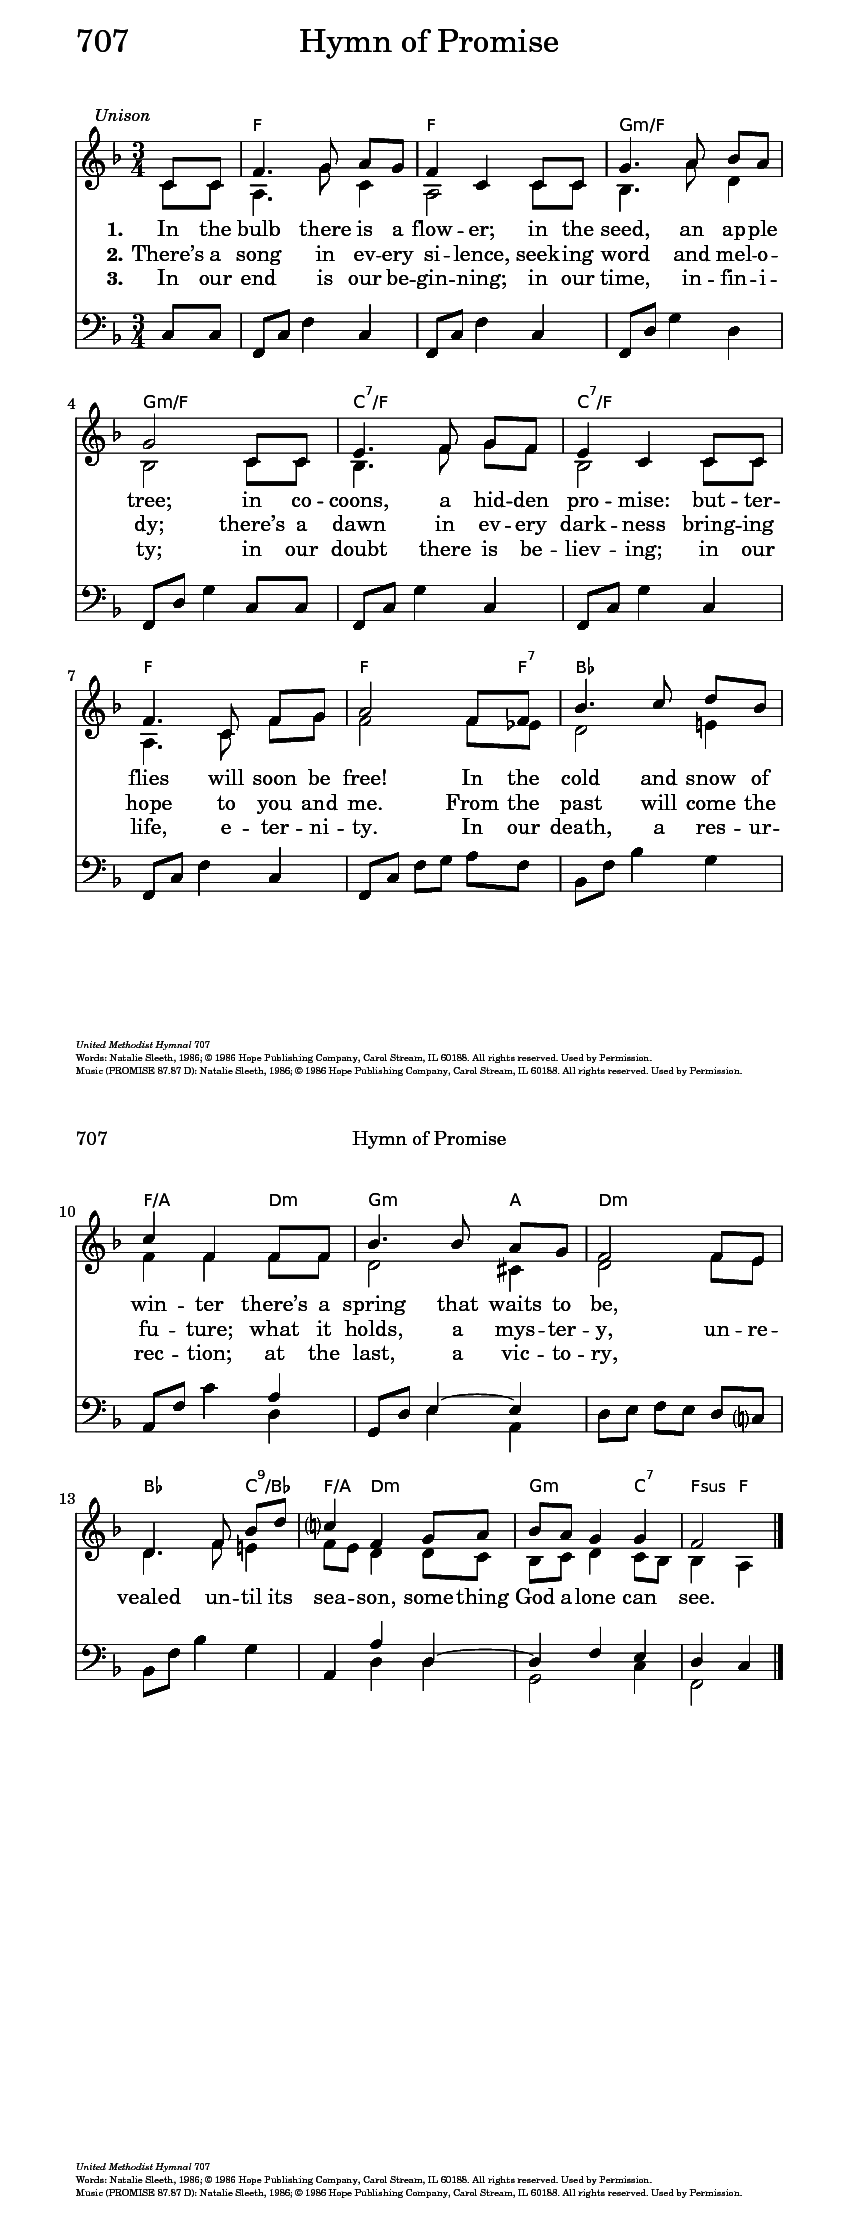 Hymn Of Promise Hymnary Org Music Christian Music